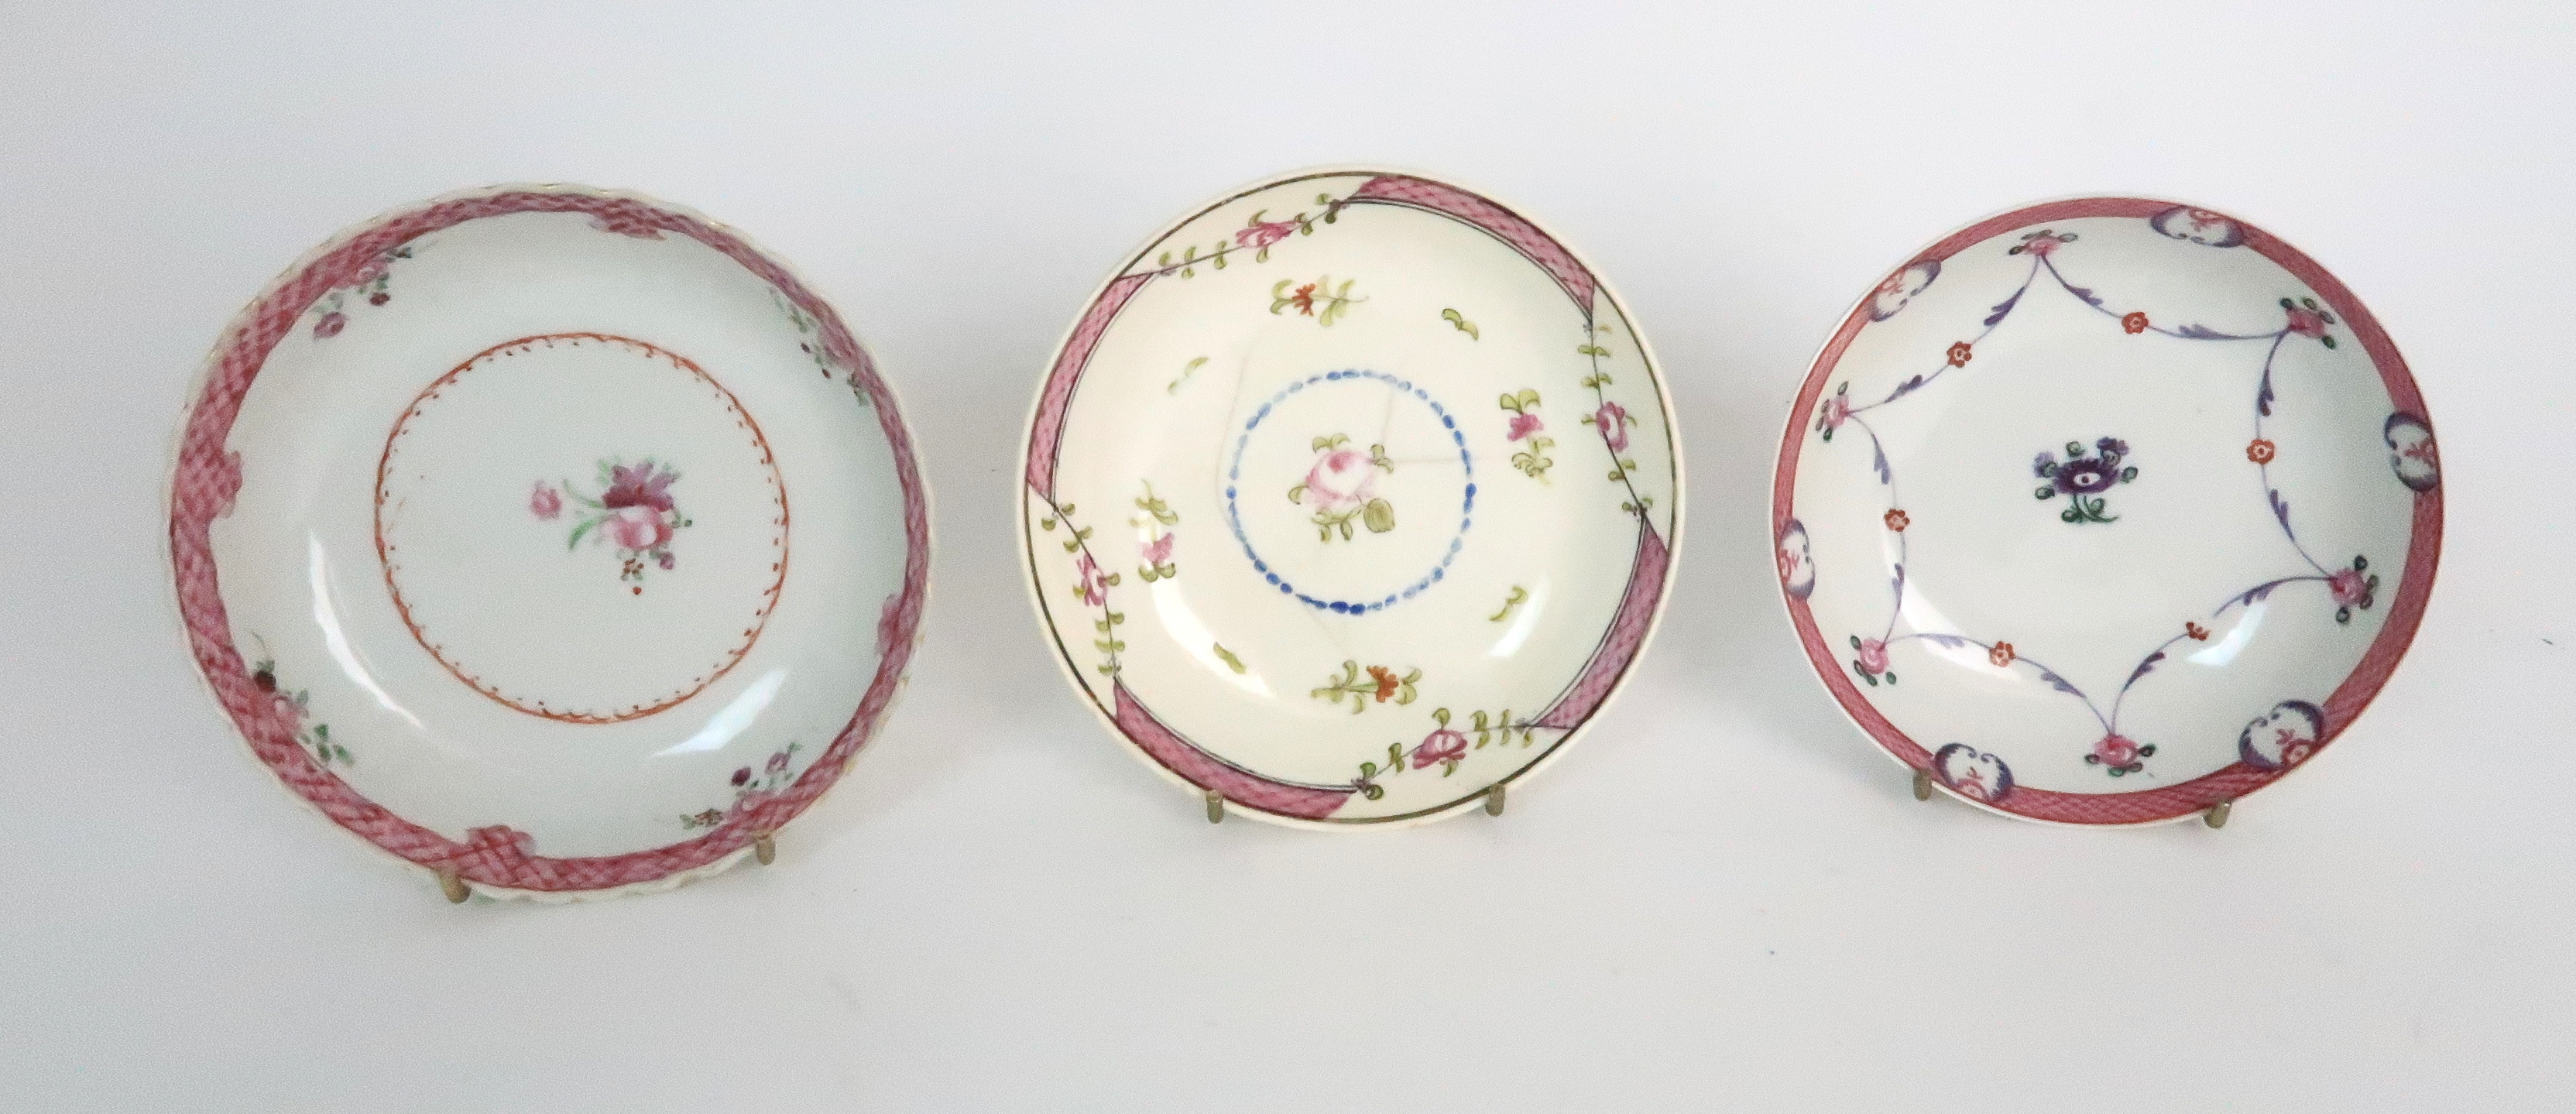 A COLLECTION OF TEA BOWLS AND SAUCERS each with pink scale and floral decoration including New Hall; - Image 4 of 12